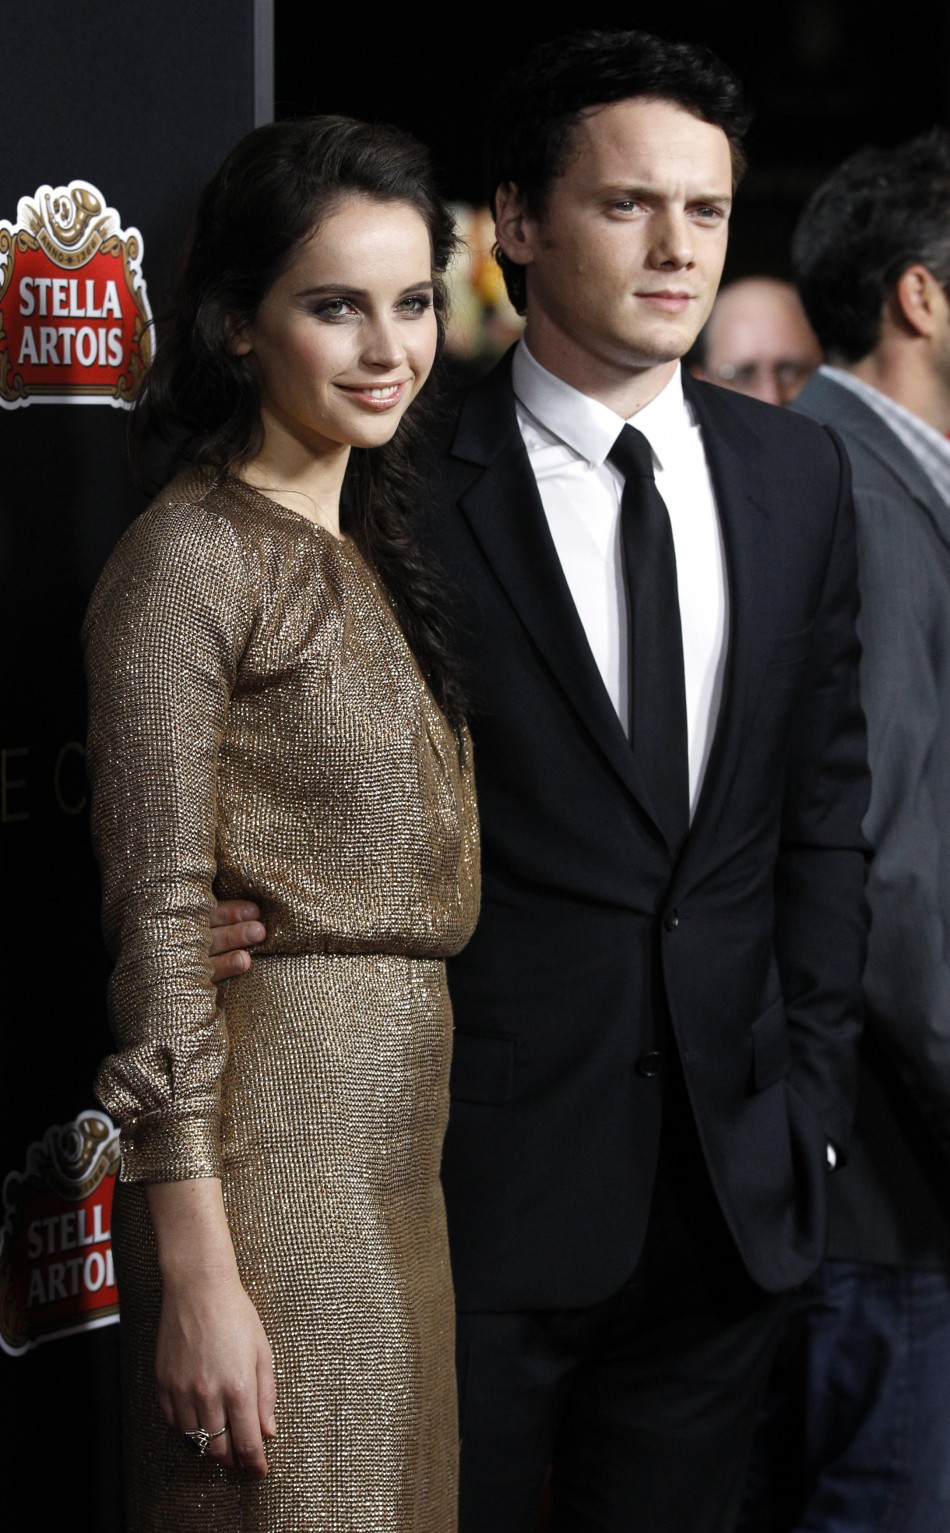 anton yelchin dating life Dating msn spotlight  but it will go towards funding a documentary about yelchin's life yelchin's parents founded the anton yelchin foundation in 2017 in.